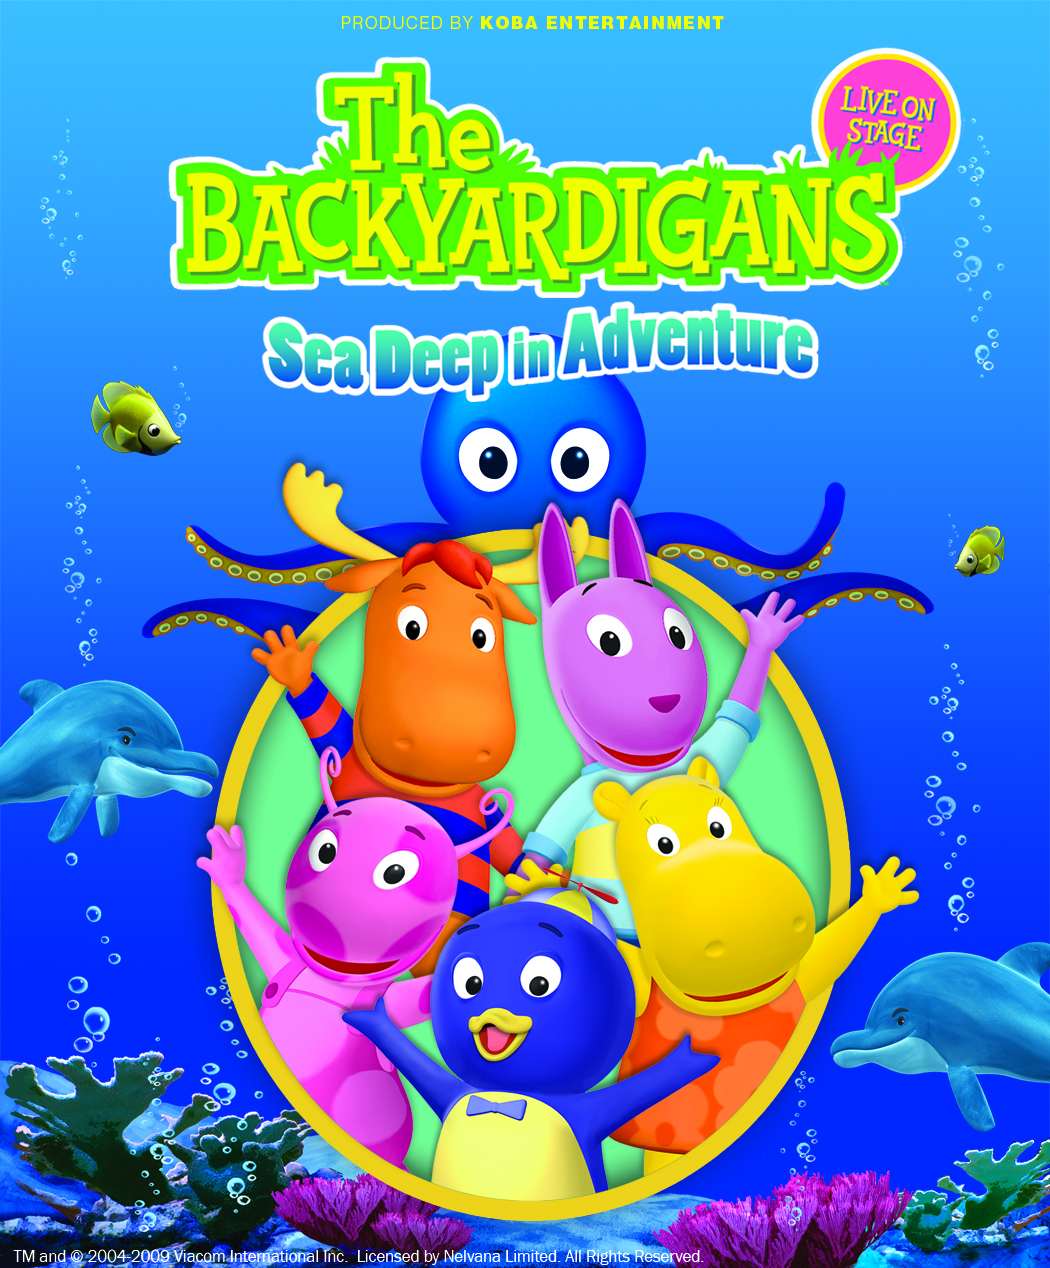 The Backyardigans Are Coming To Moncton And Dvd Prizepack Giveaway